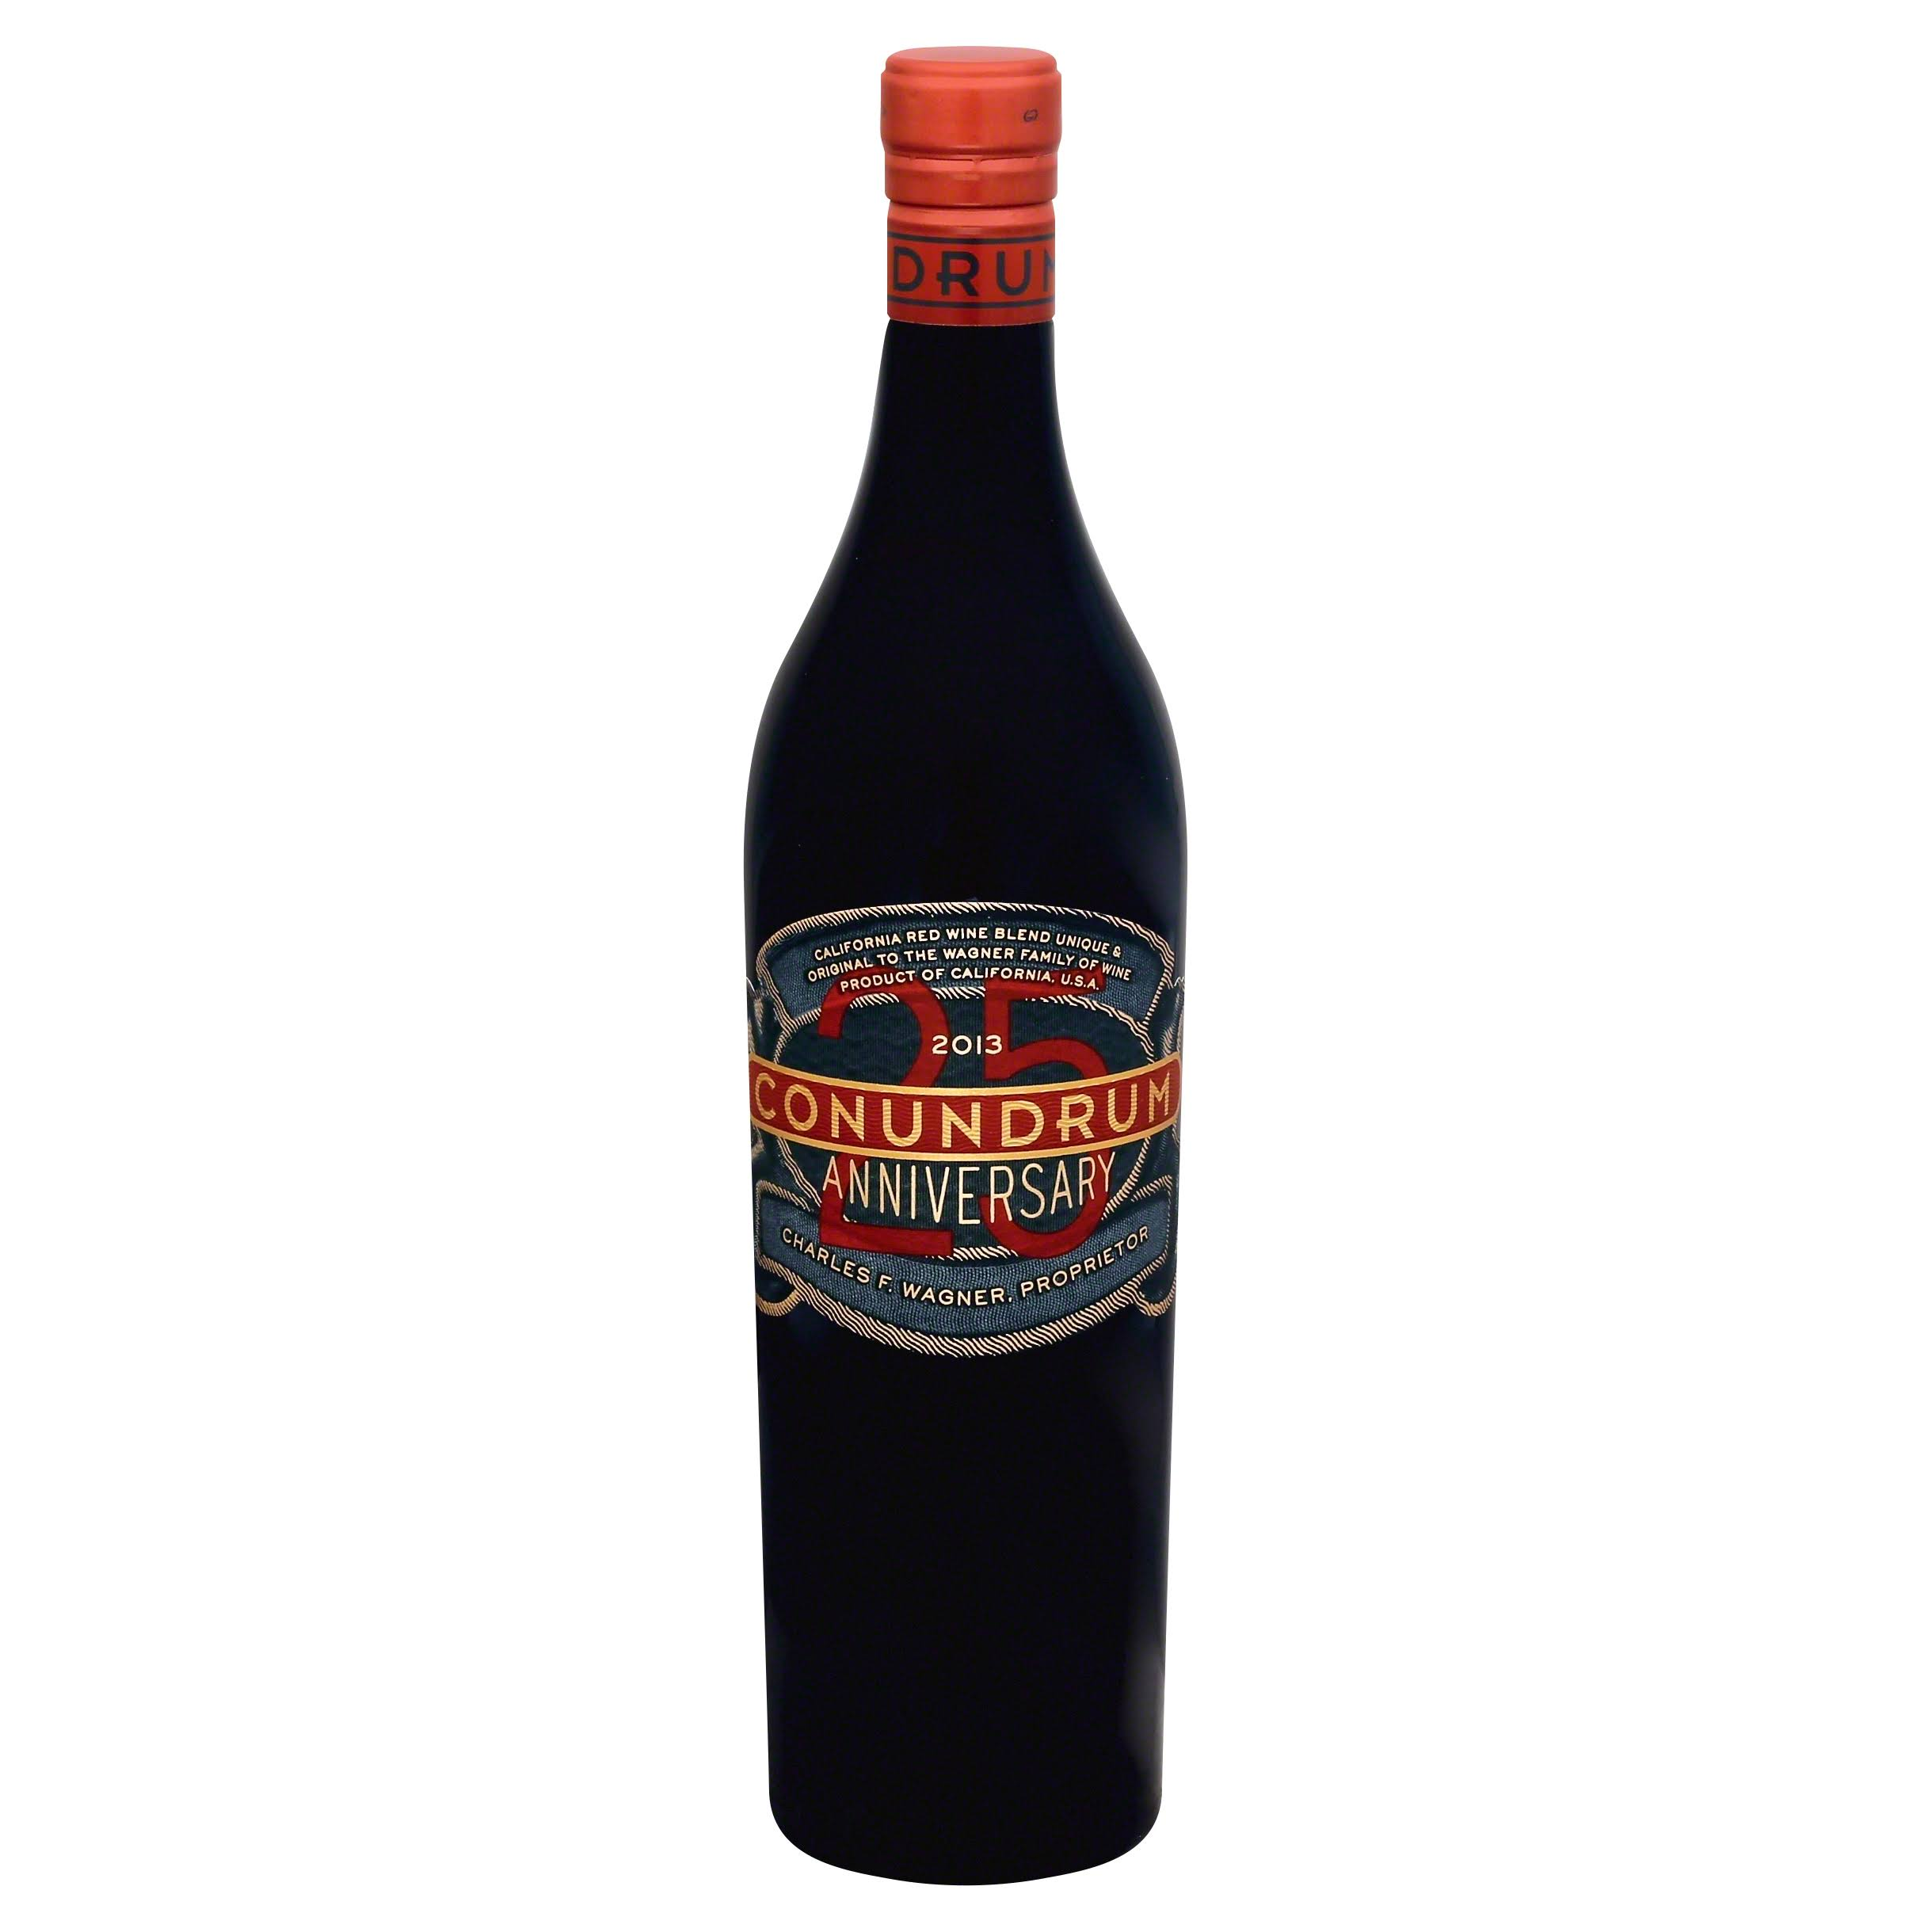 Conundrum 25th Anniversary Red Wine - 750ml